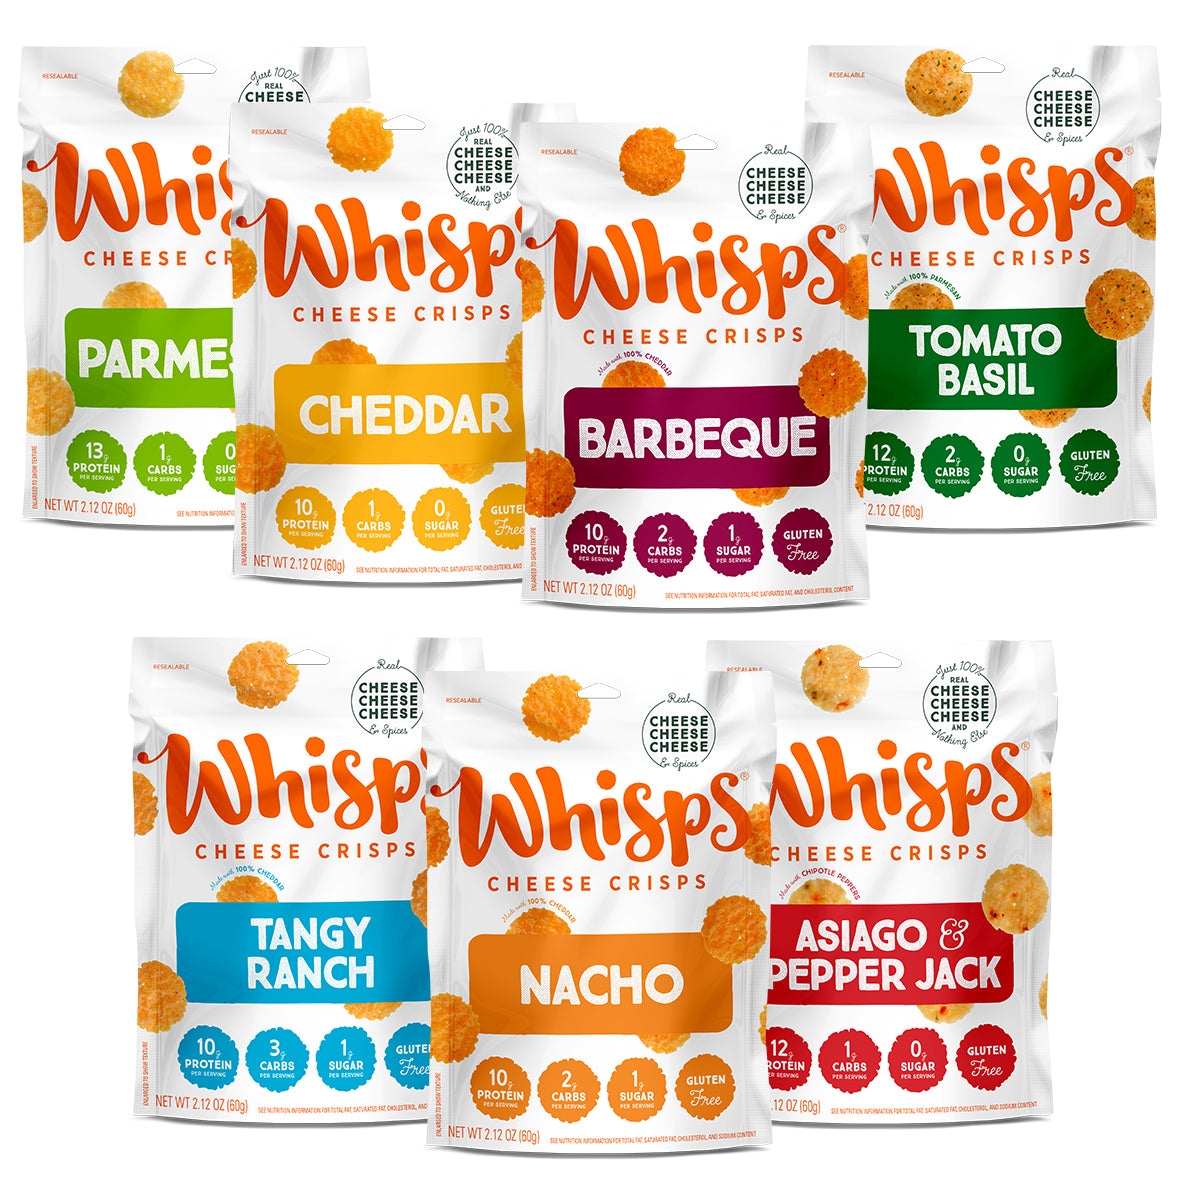 Buy Whisps Parmesan, Cheddar, Tangy Ranch, Nacho Asiago Pepper Jack, Tomato Basil, BBQ Variety on Amazon